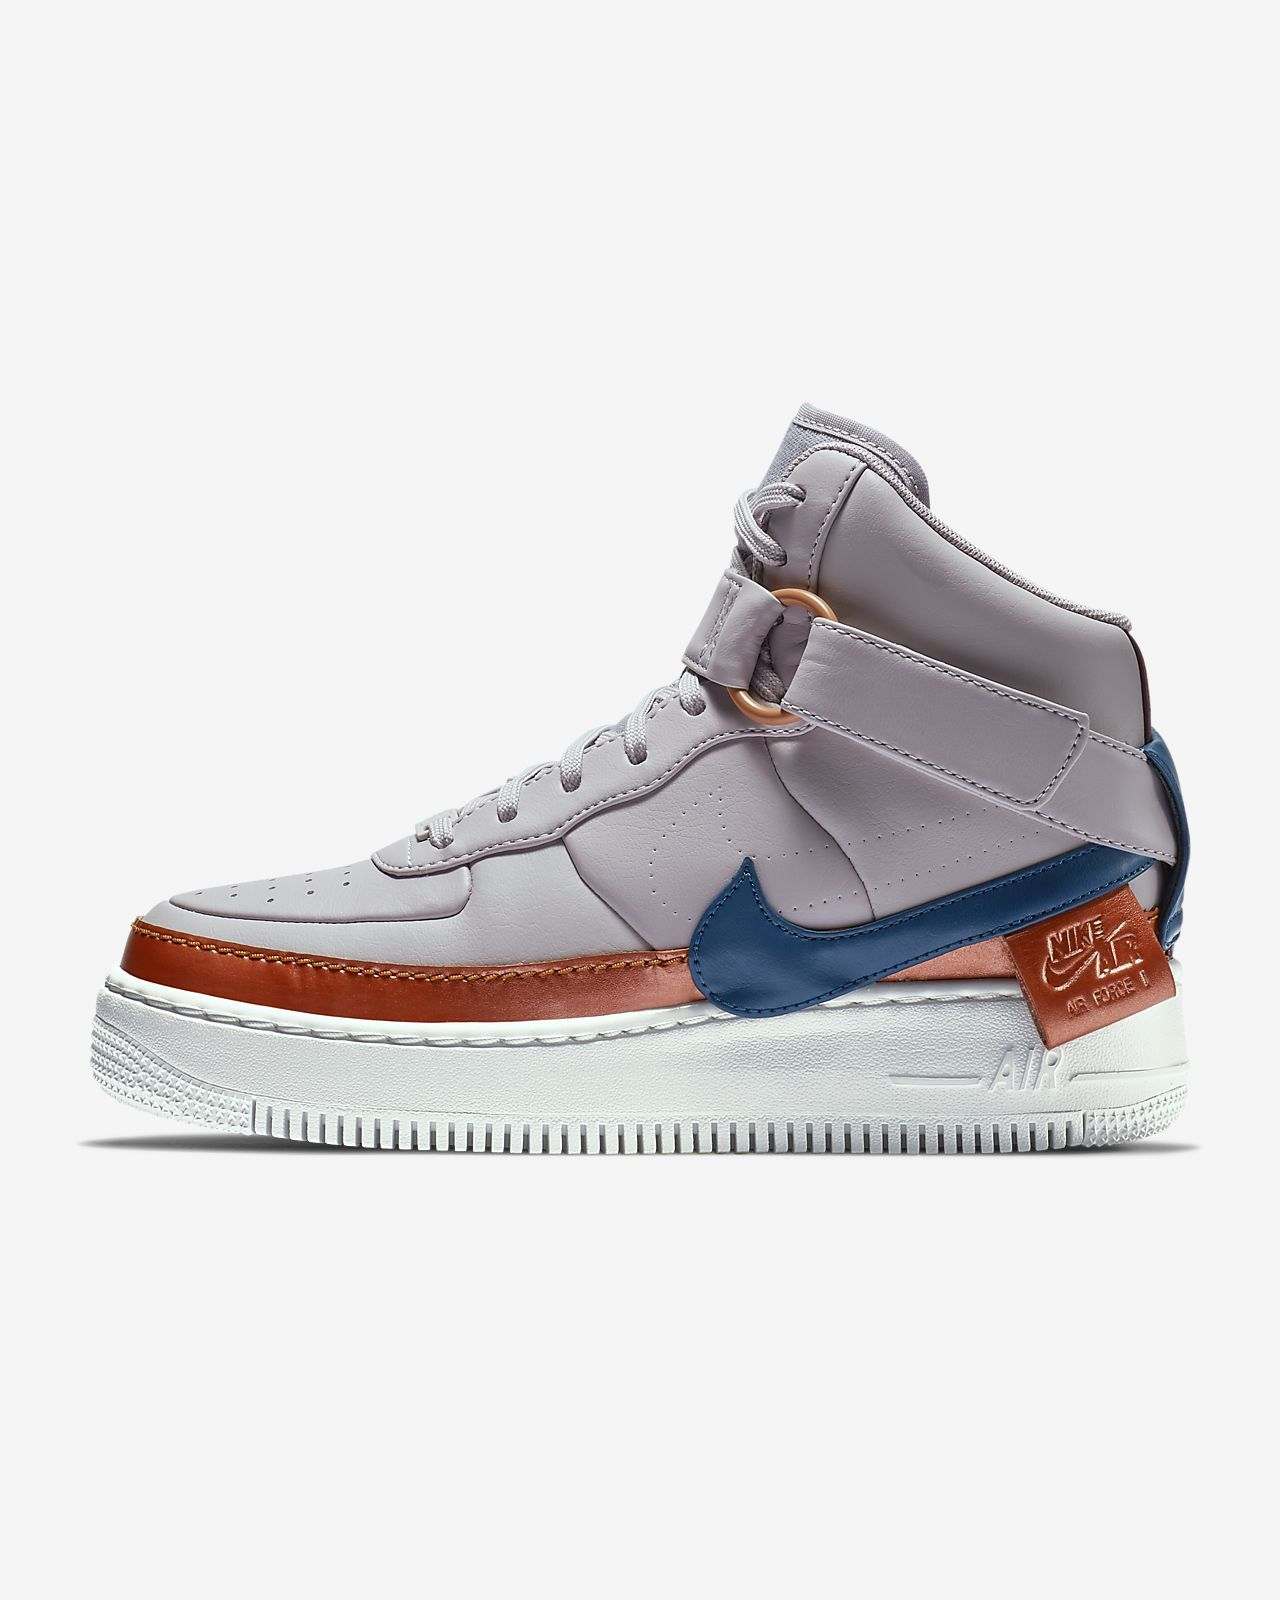 a859d86942d5 Nike Sportswear Women s Shoe Air Force 1 Jester High XX ...